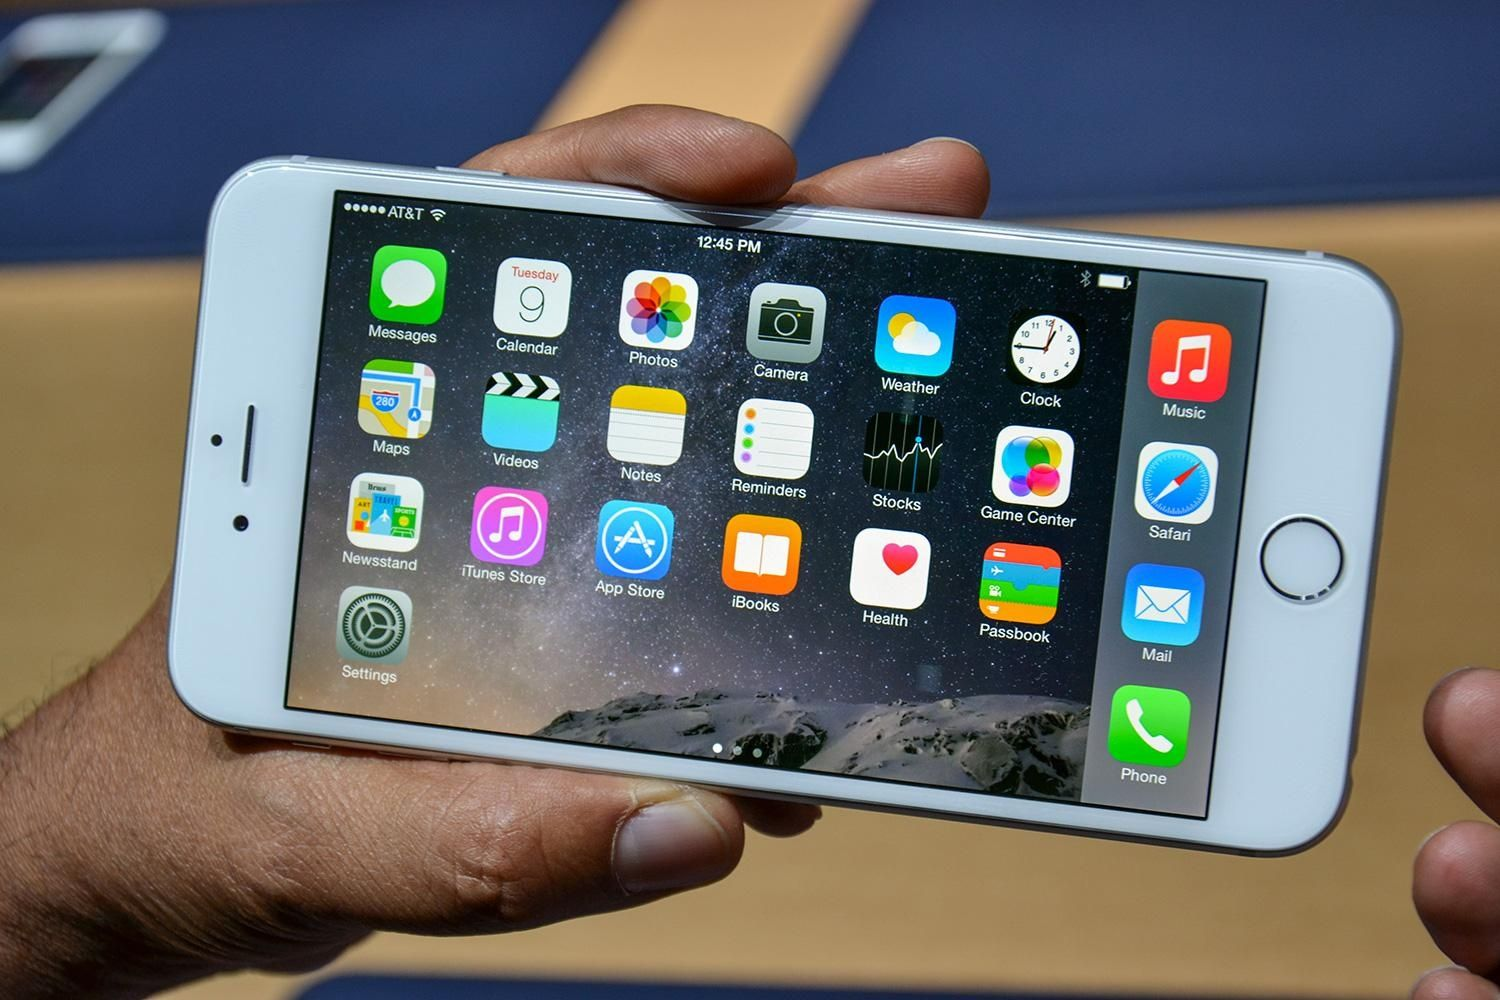 Apple iPhone 6 review (With images) Iphone features